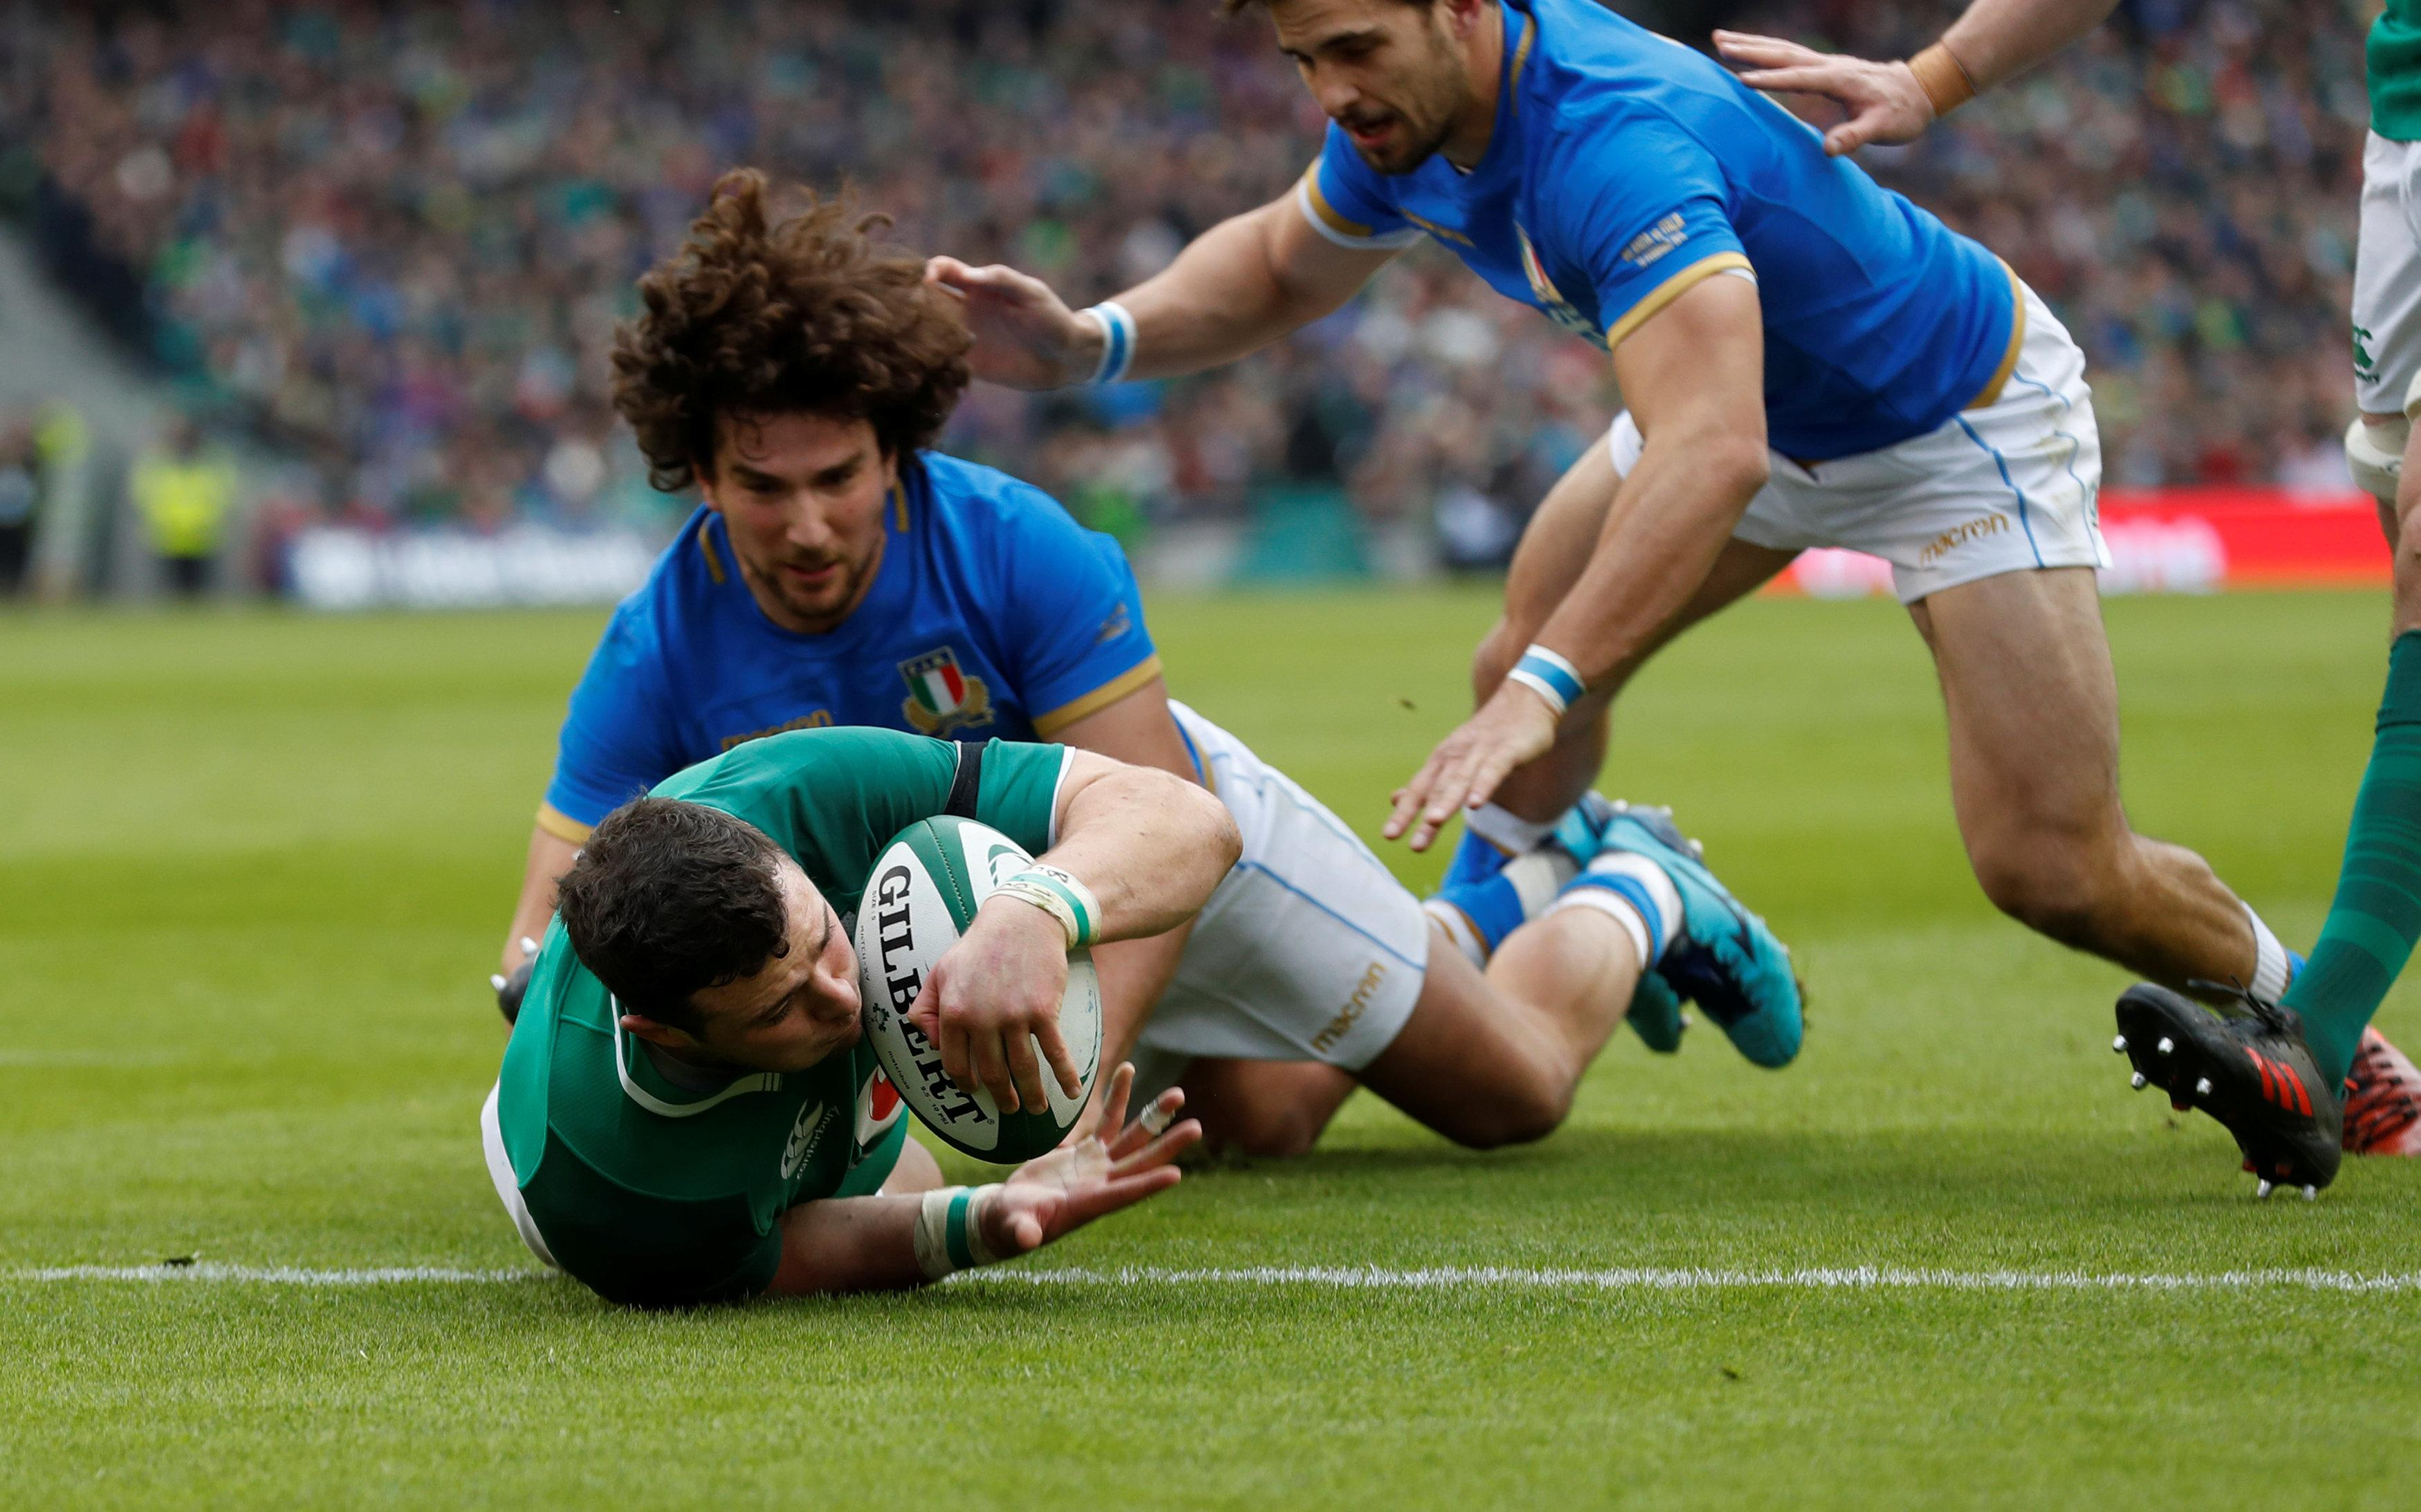 Ireland's crushing victory over Italy leaves them top of the standings on points difference